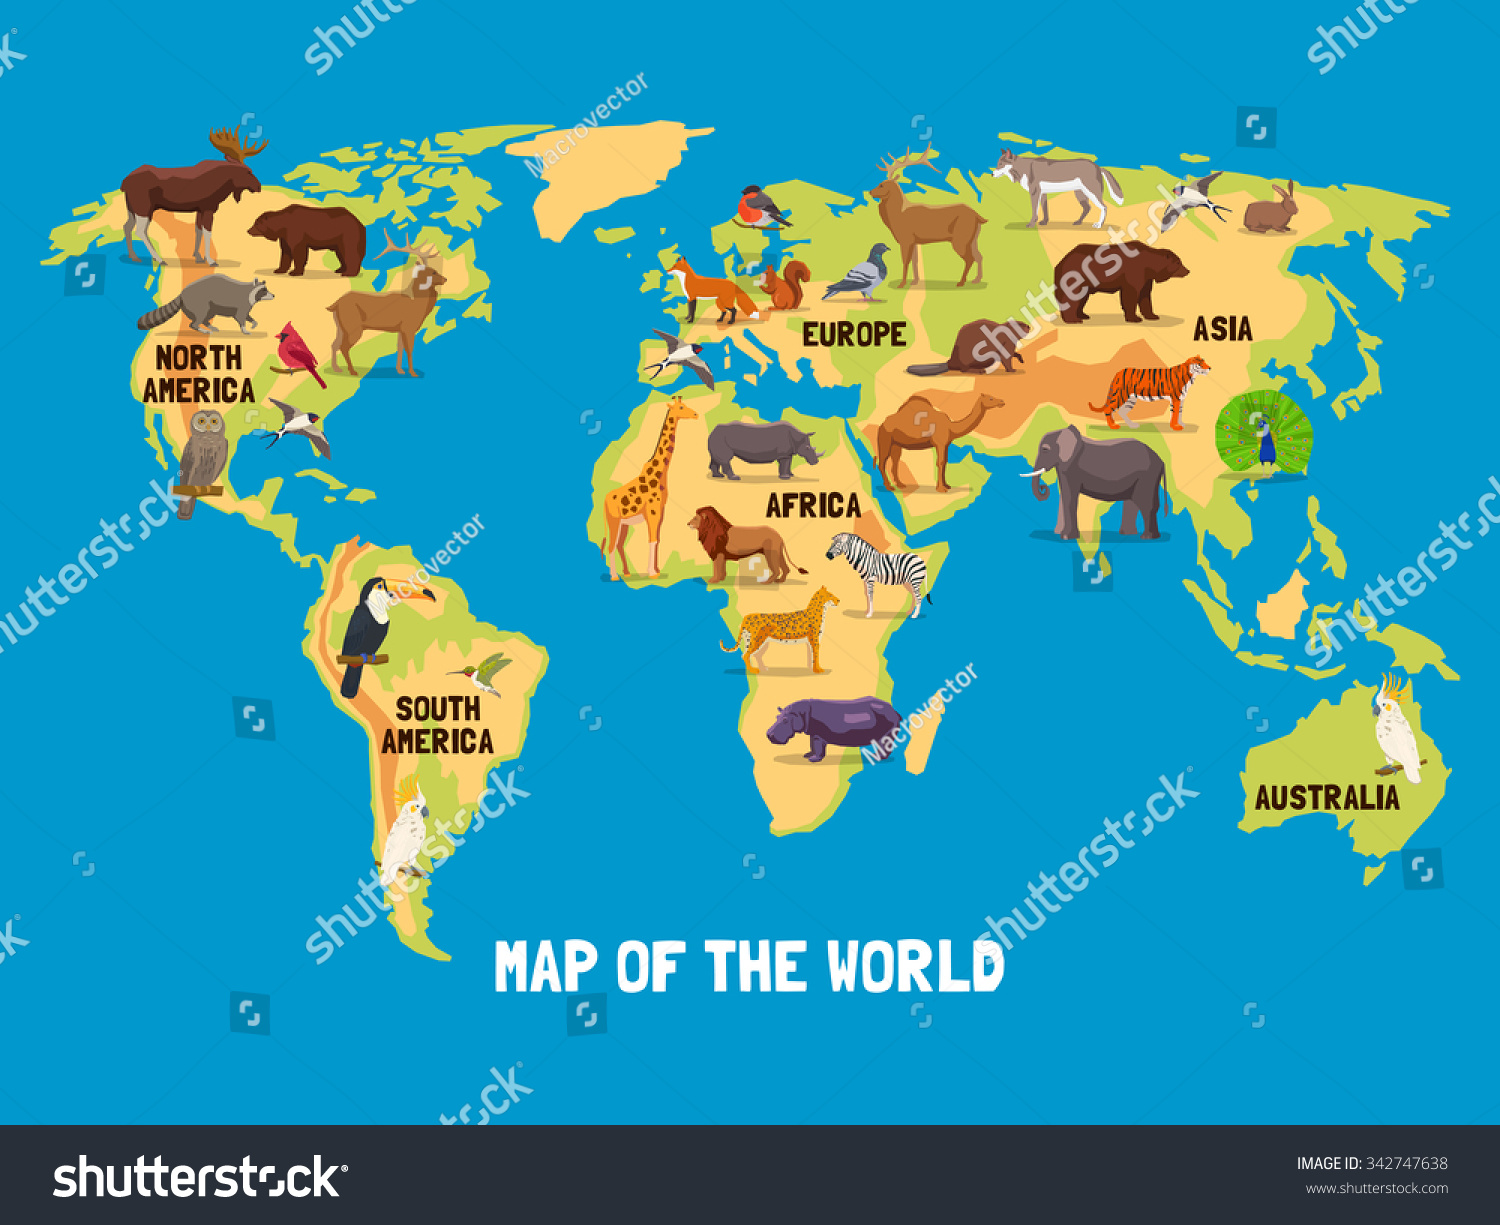 Flat map world animals living different vectores en stock 342747638 flat map of world with animals living in different parts of continents vector illustration gumiabroncs Gallery